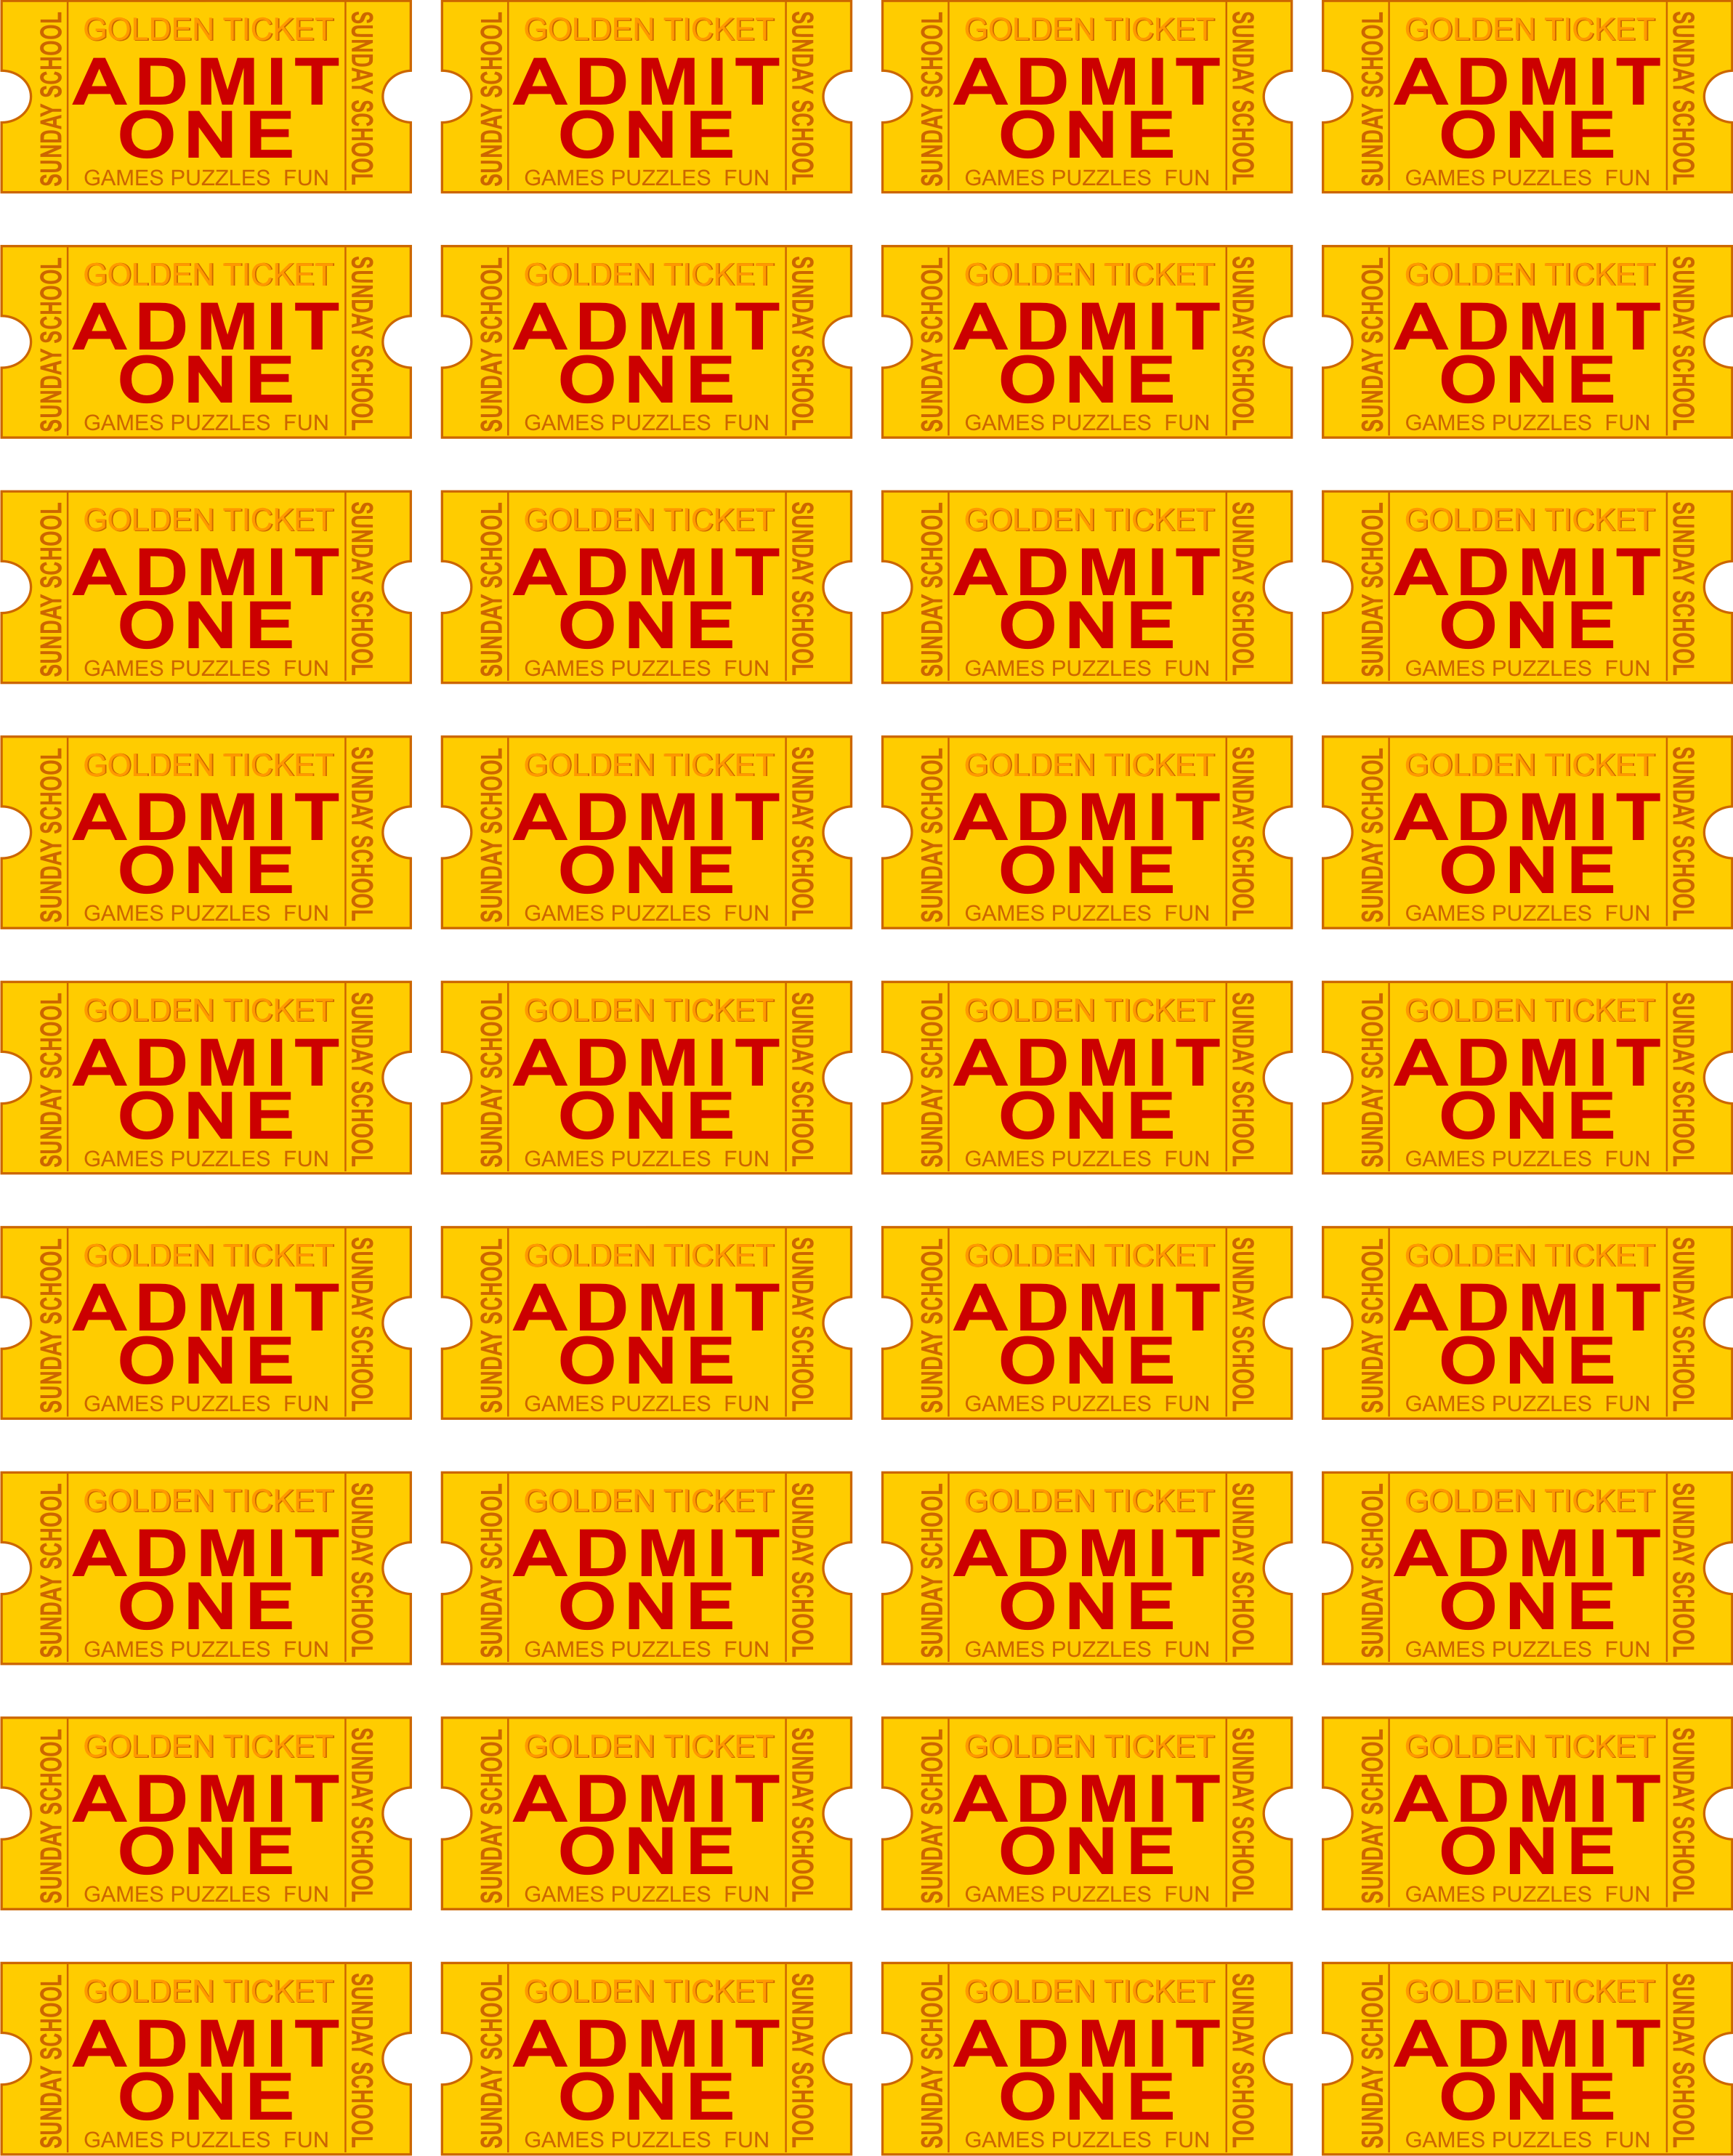 Admit One Ticket Clip Art N9 free image.